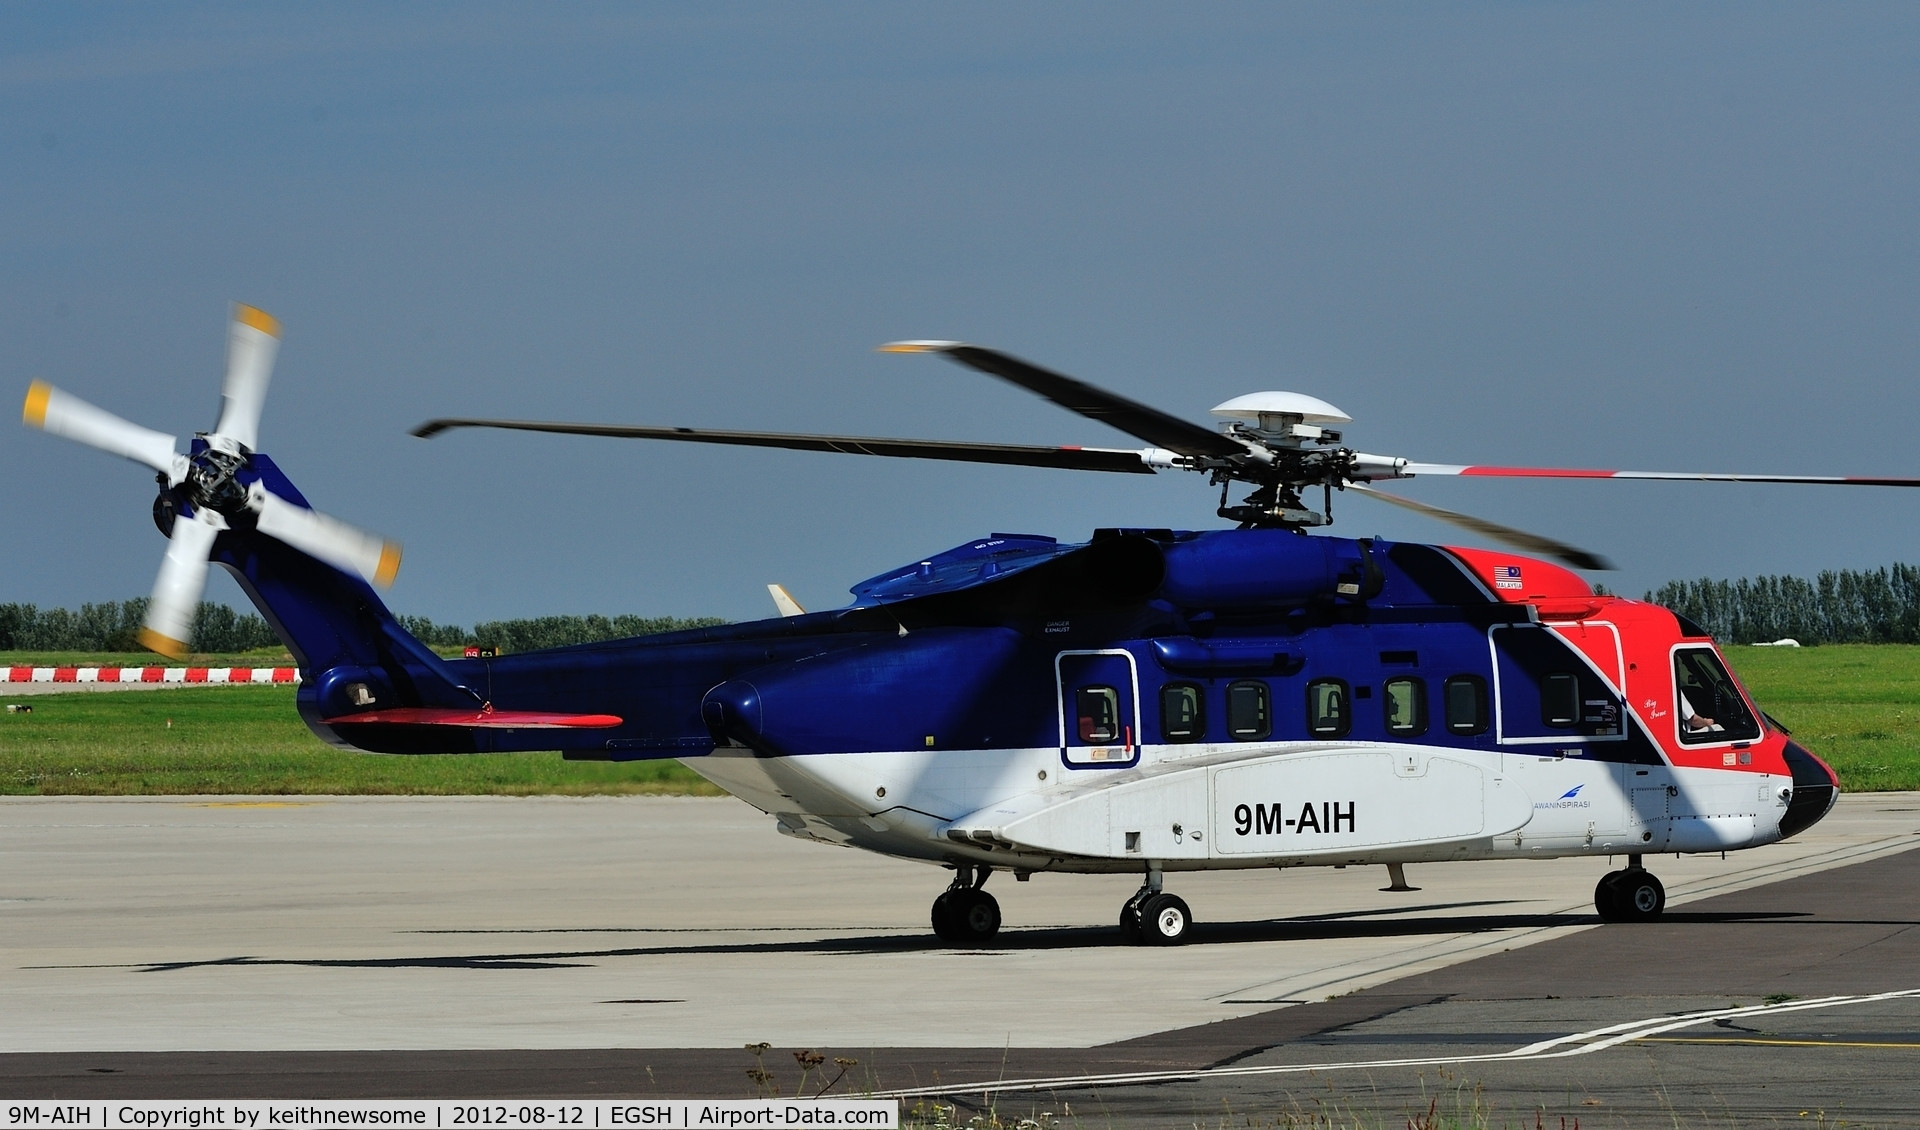 9M-AIH, 2005 Sikorsky S-92A C/N 920024, Leaving after fuel stop on a trip to Aberdeen.